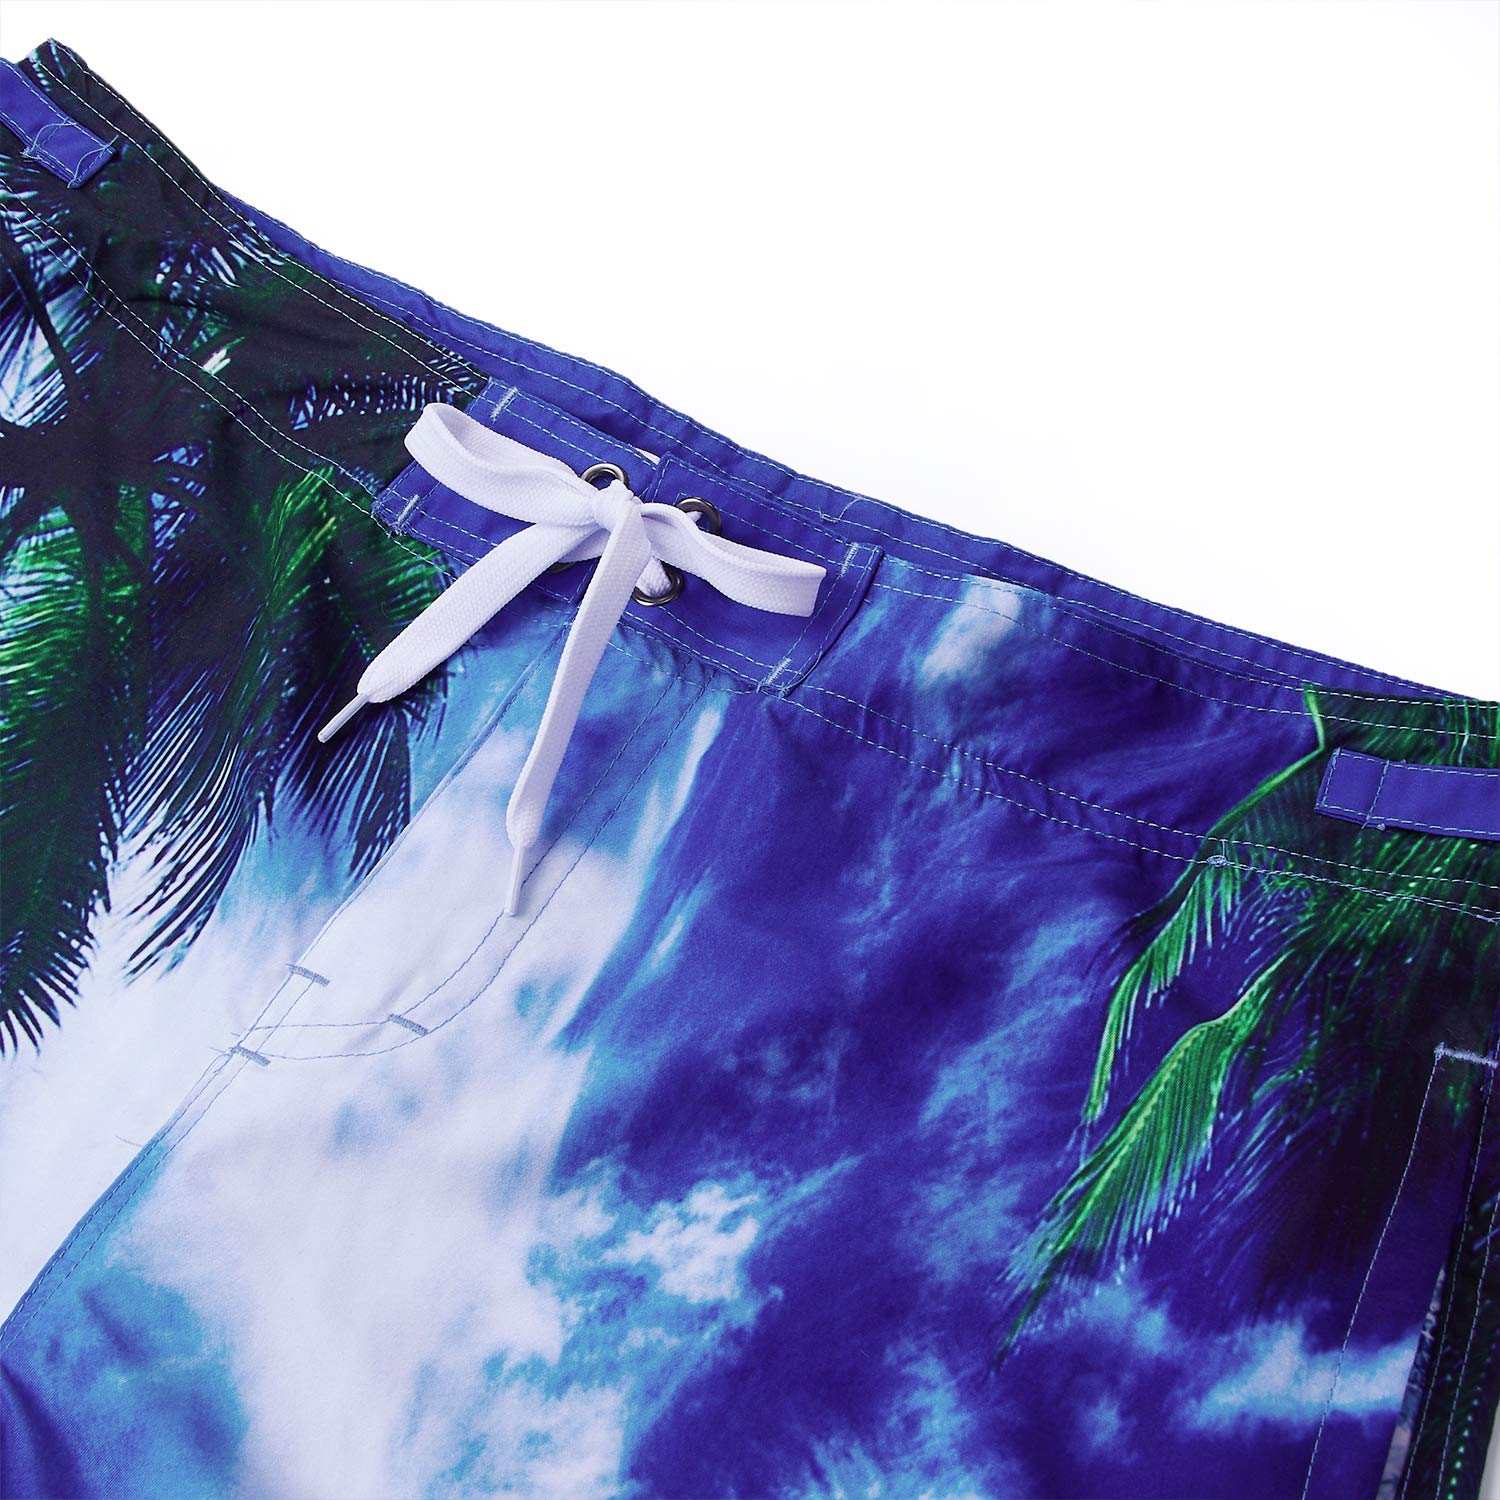 90s Men's Funny Board Shorts 3D Graphic Athletic Pants Blue Sky and White Clouds Printing Swimming Trunks 22